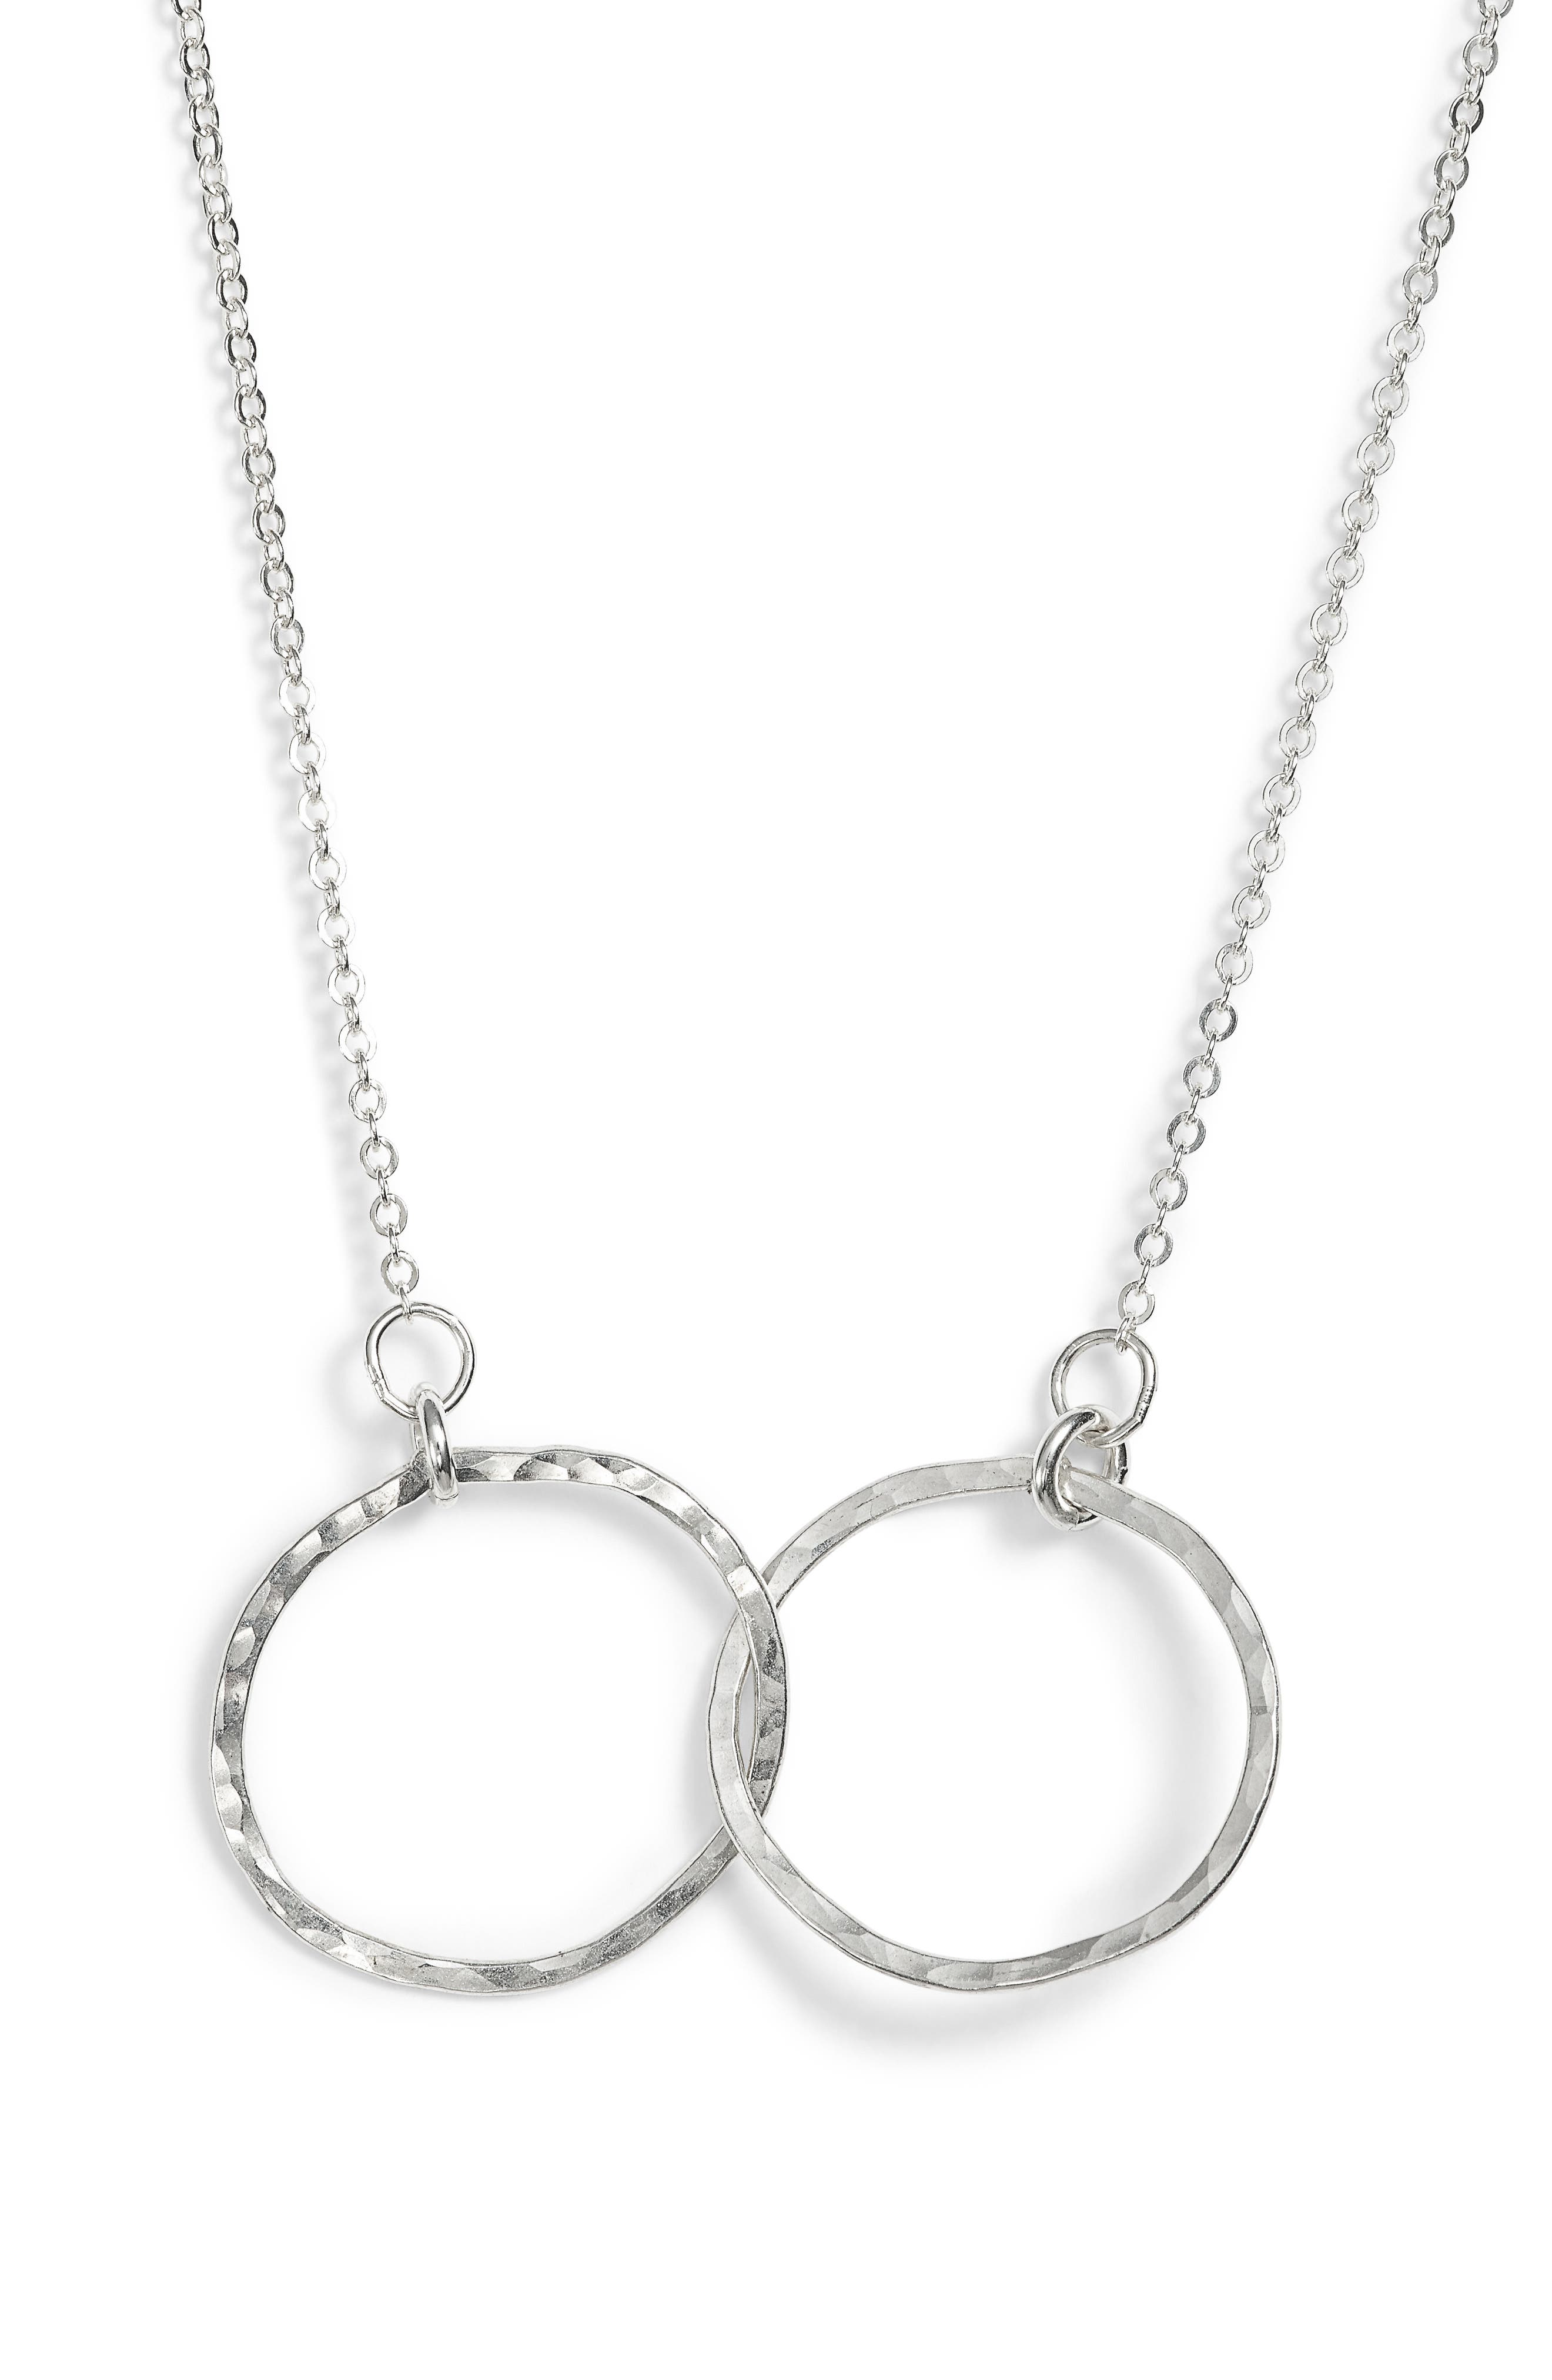 Lucky Eternity Necklace,                             Main thumbnail 1, color,                             040